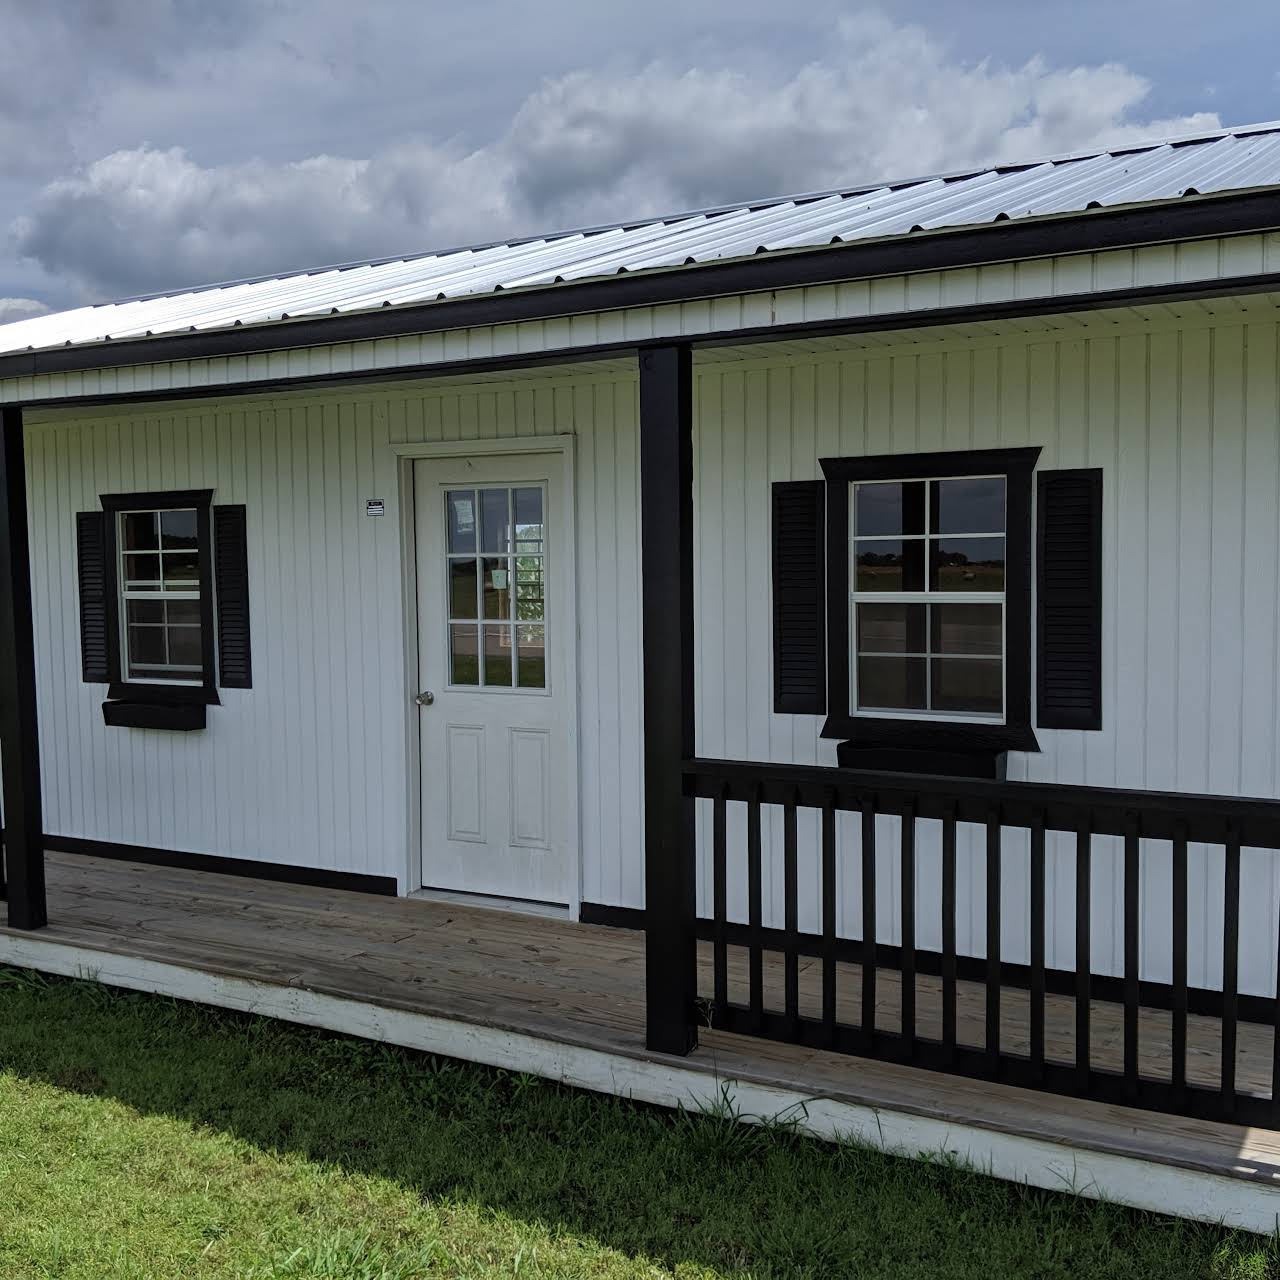 Graceland Portable Buildings of Whitewright - The truly